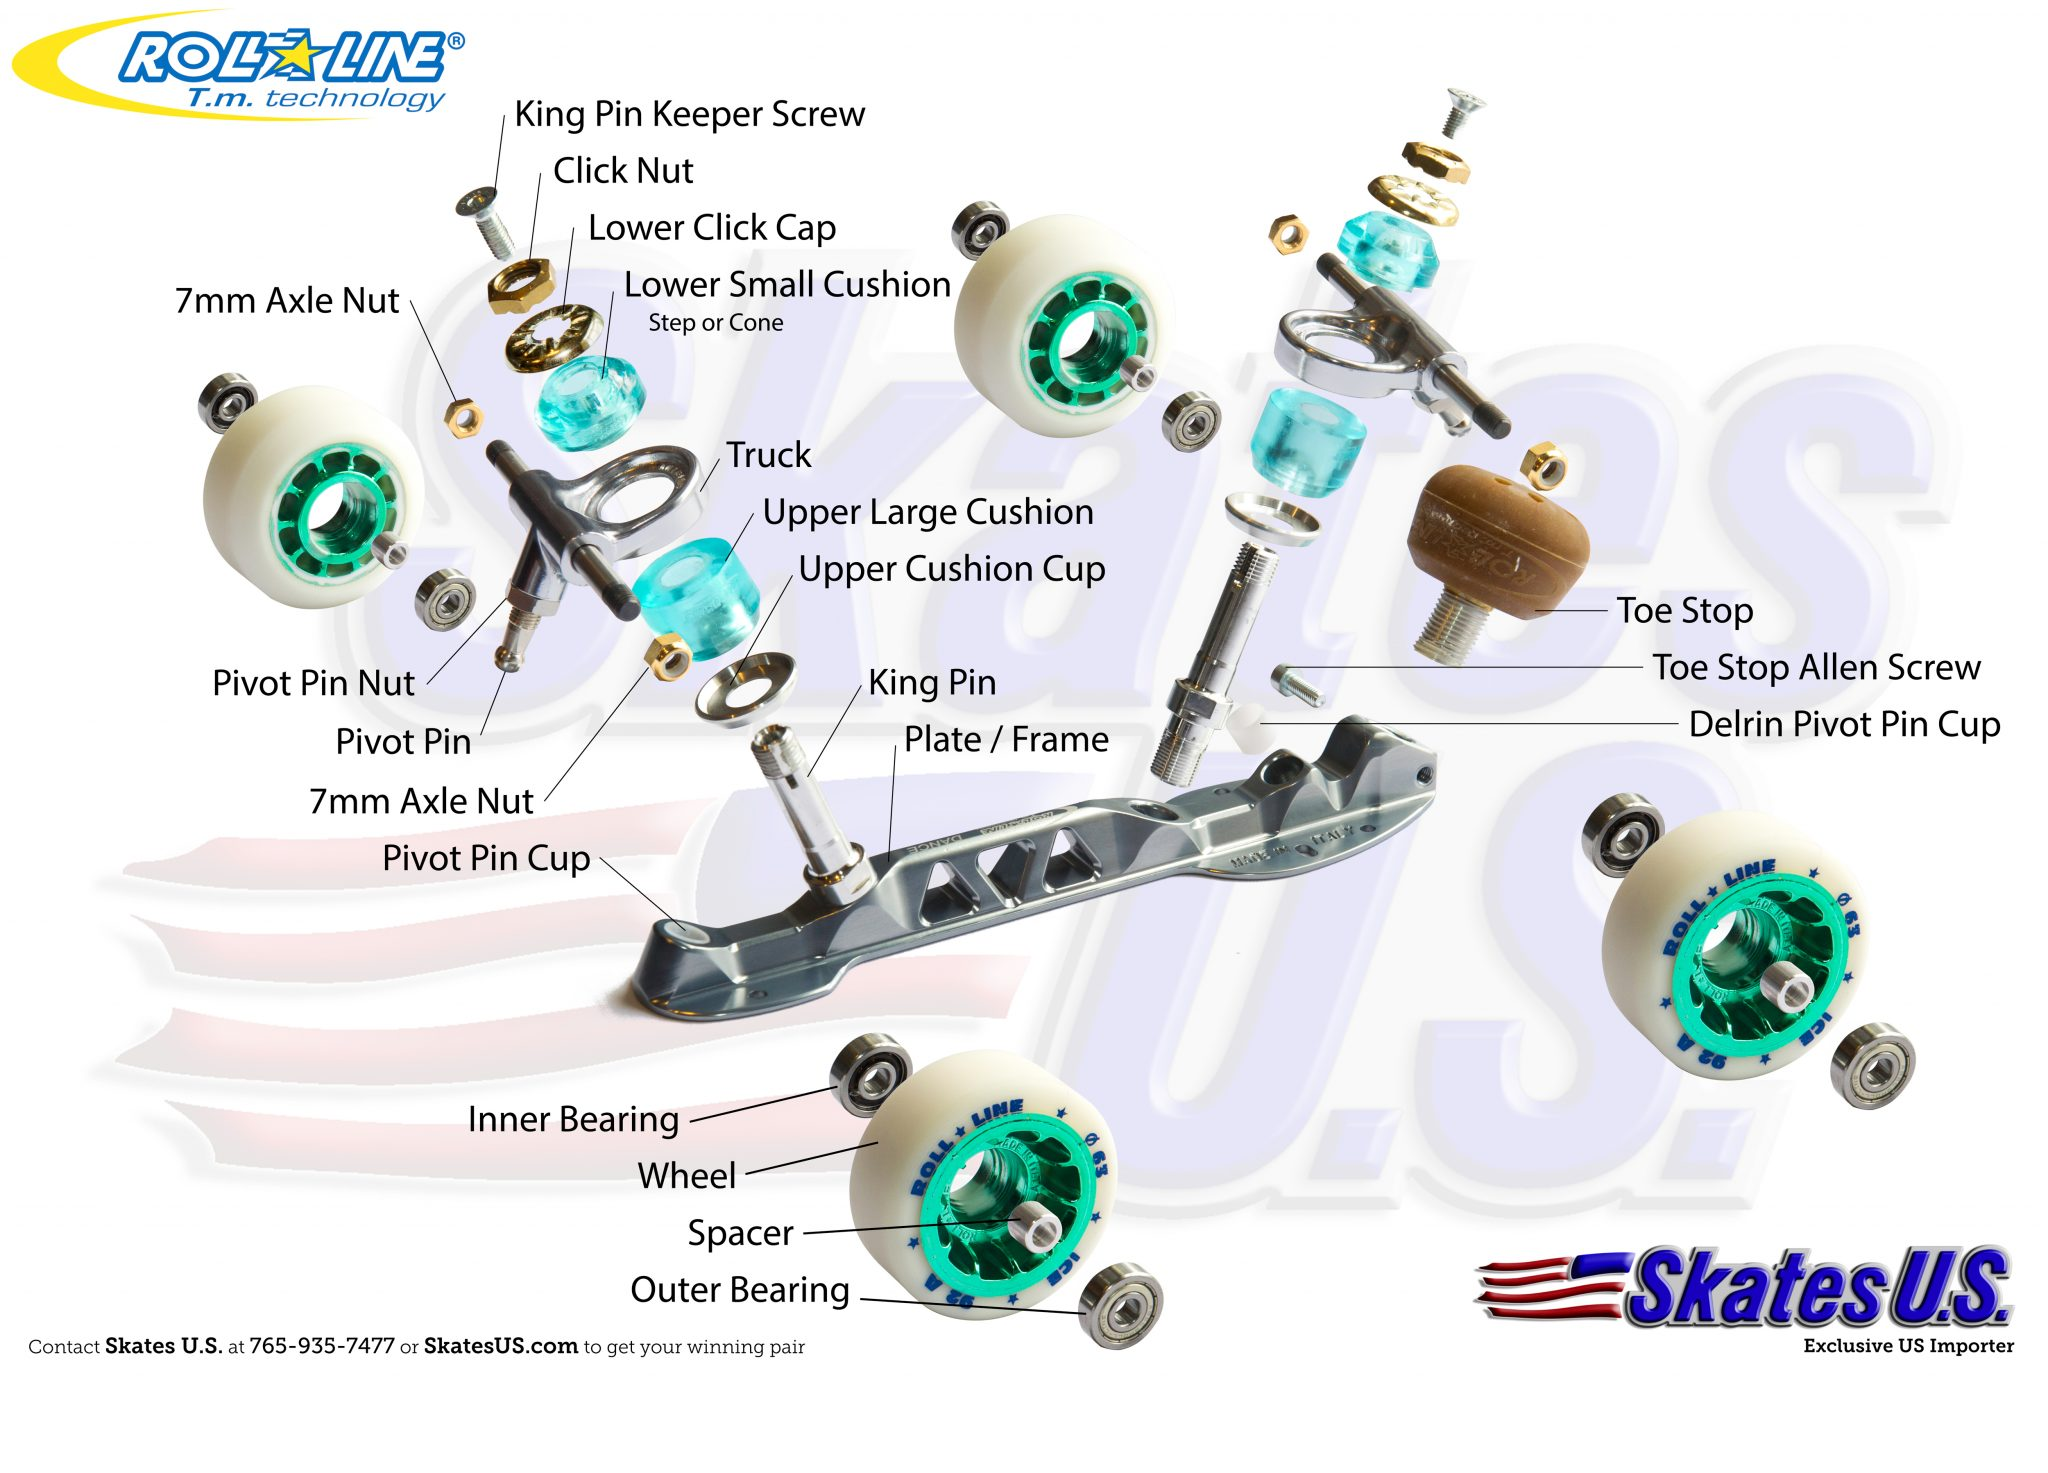 Exploded-Frame-Skates-US-2 Roll-Line